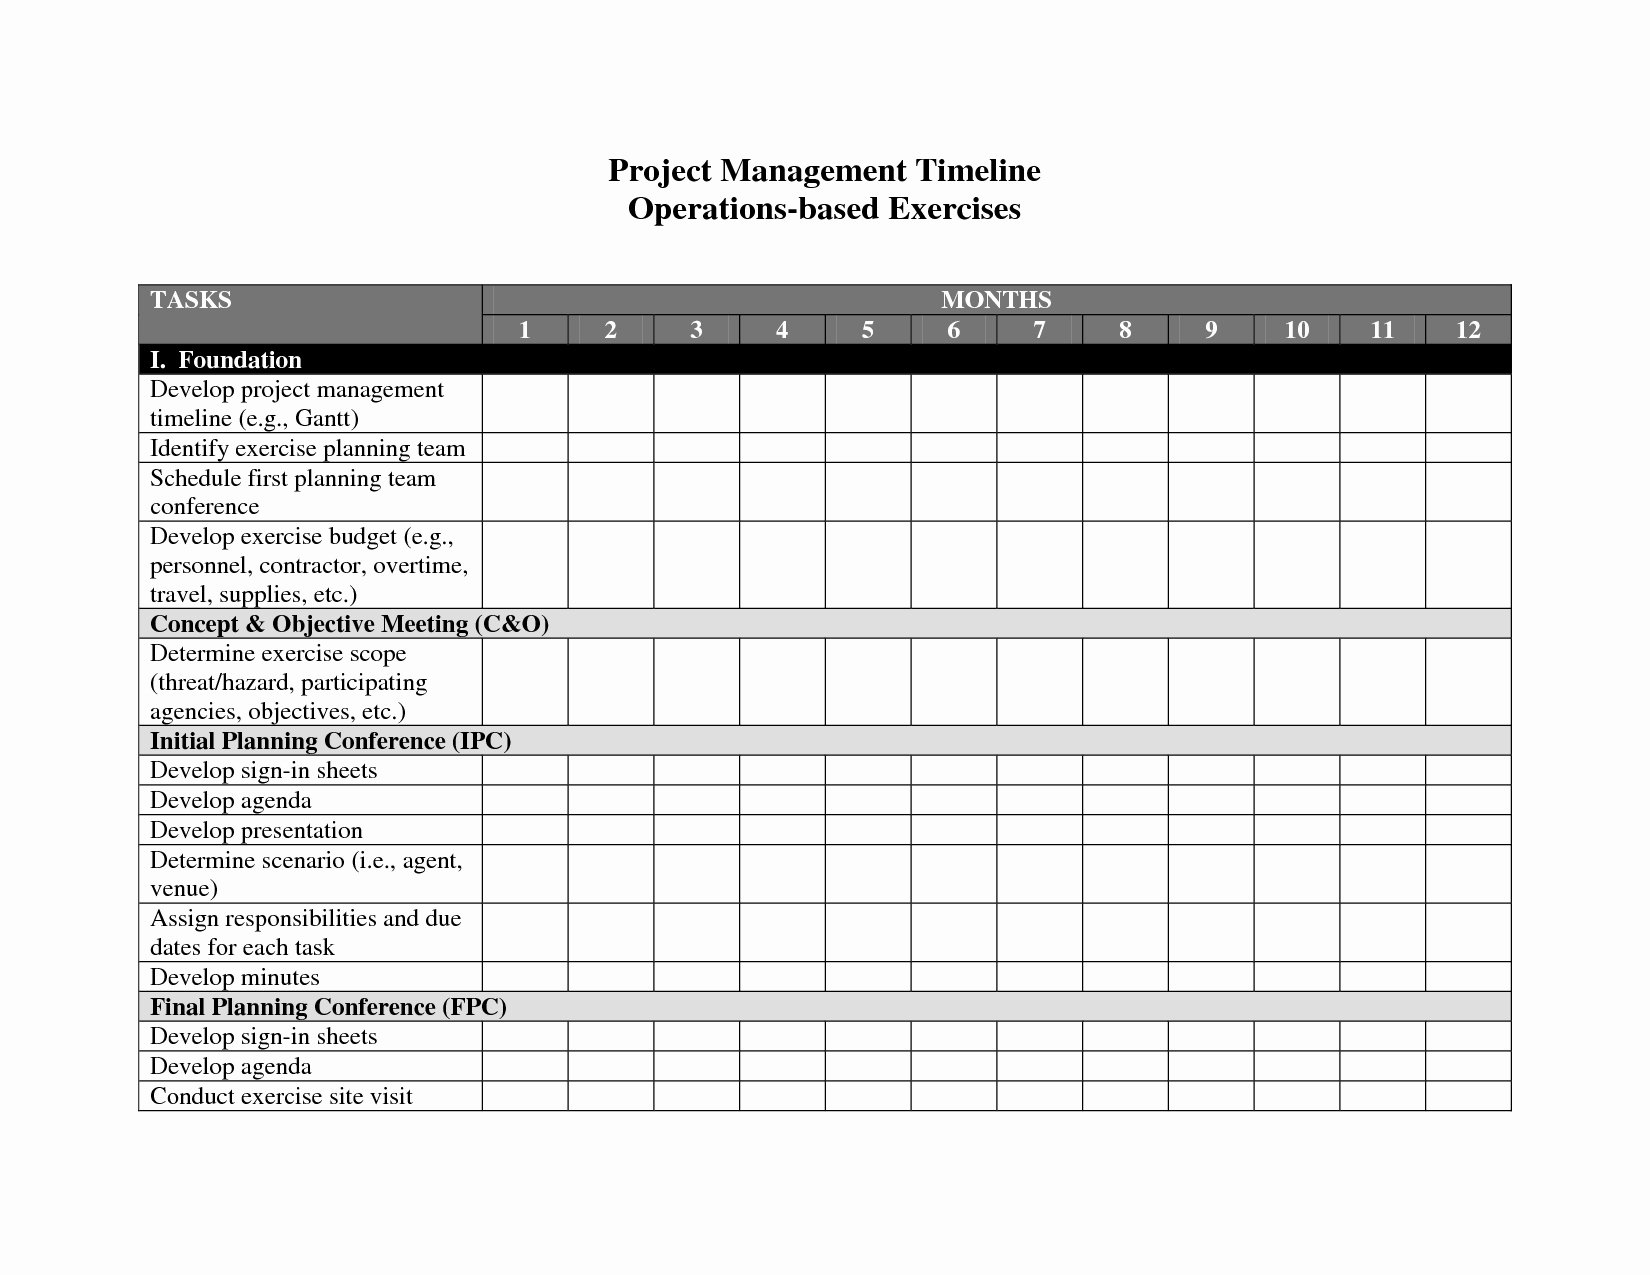 Project Management Word Template Lovely Project Management Timeline Template Word